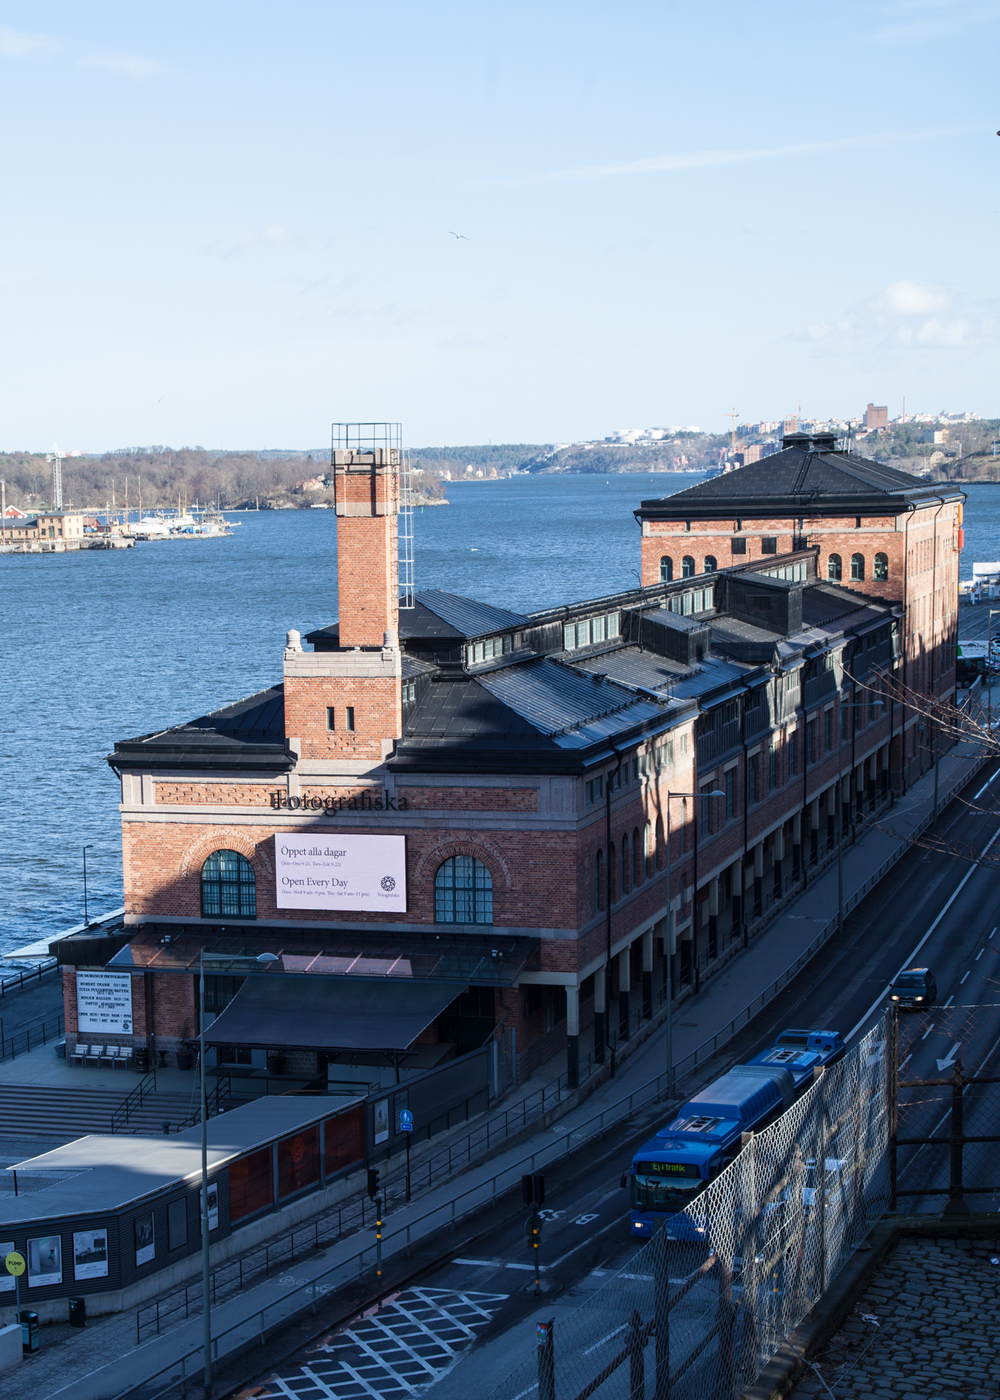 The view down onto Fotografisksa.